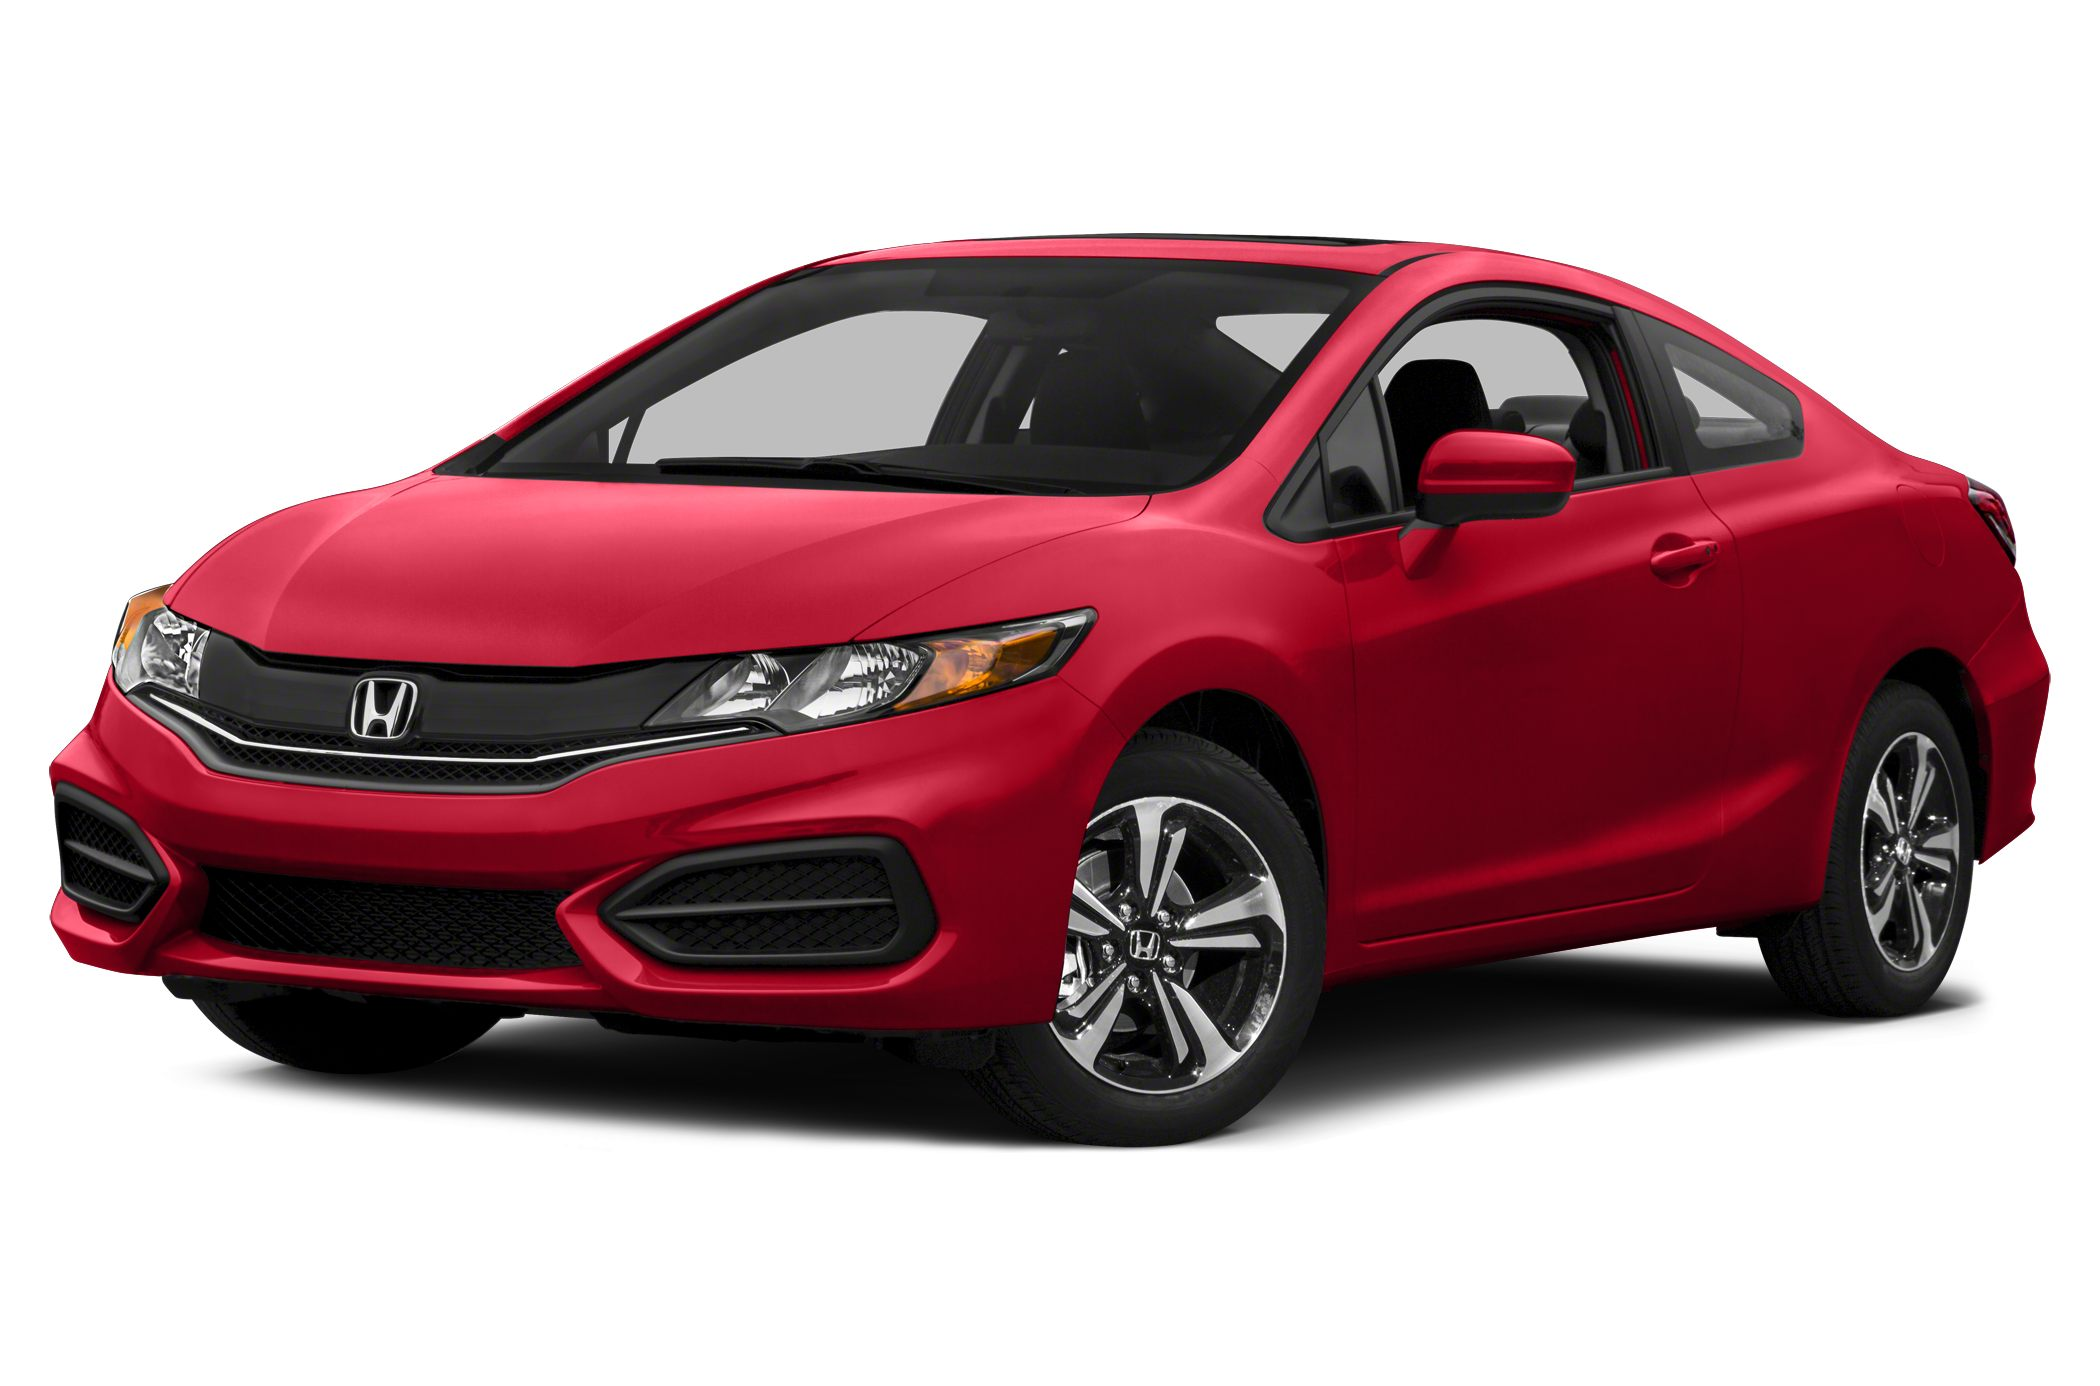 2015 Honda Civic LX Coupe for sale in Birmingham for $19,910 with 5 miles